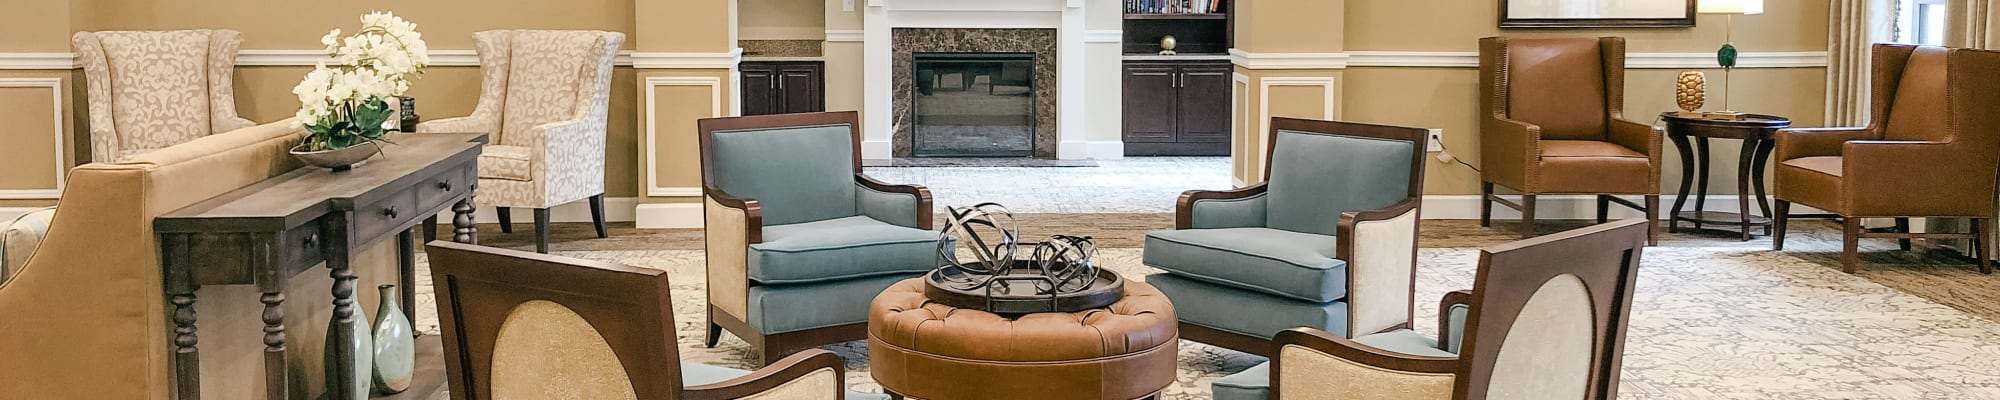 Living Options at Harmony at Greensboro in Greensboro, North Carolina